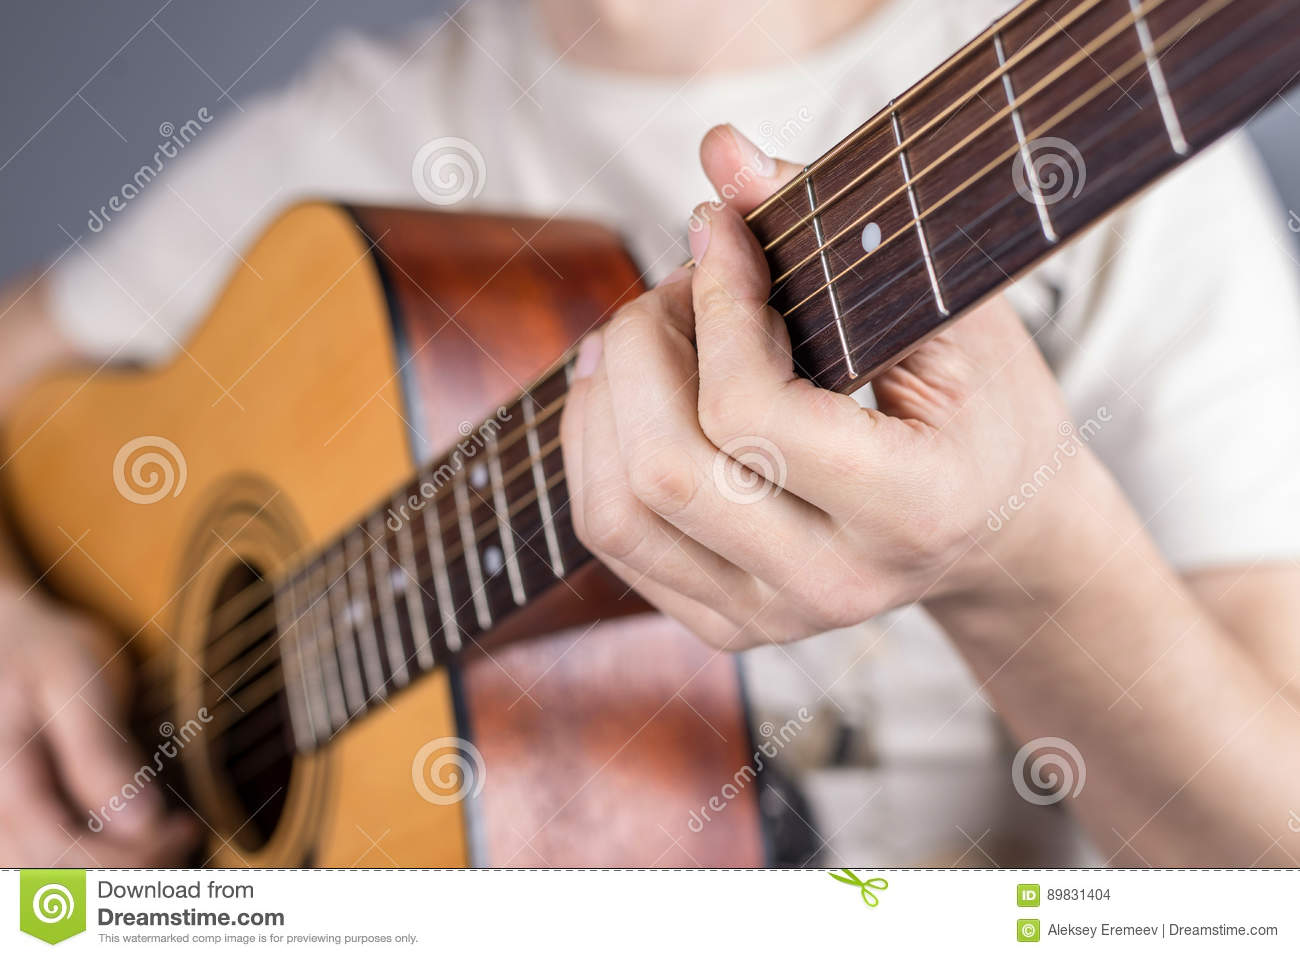 A Picture Of An Acoustic Guitar Classical Color In The Hands Of A